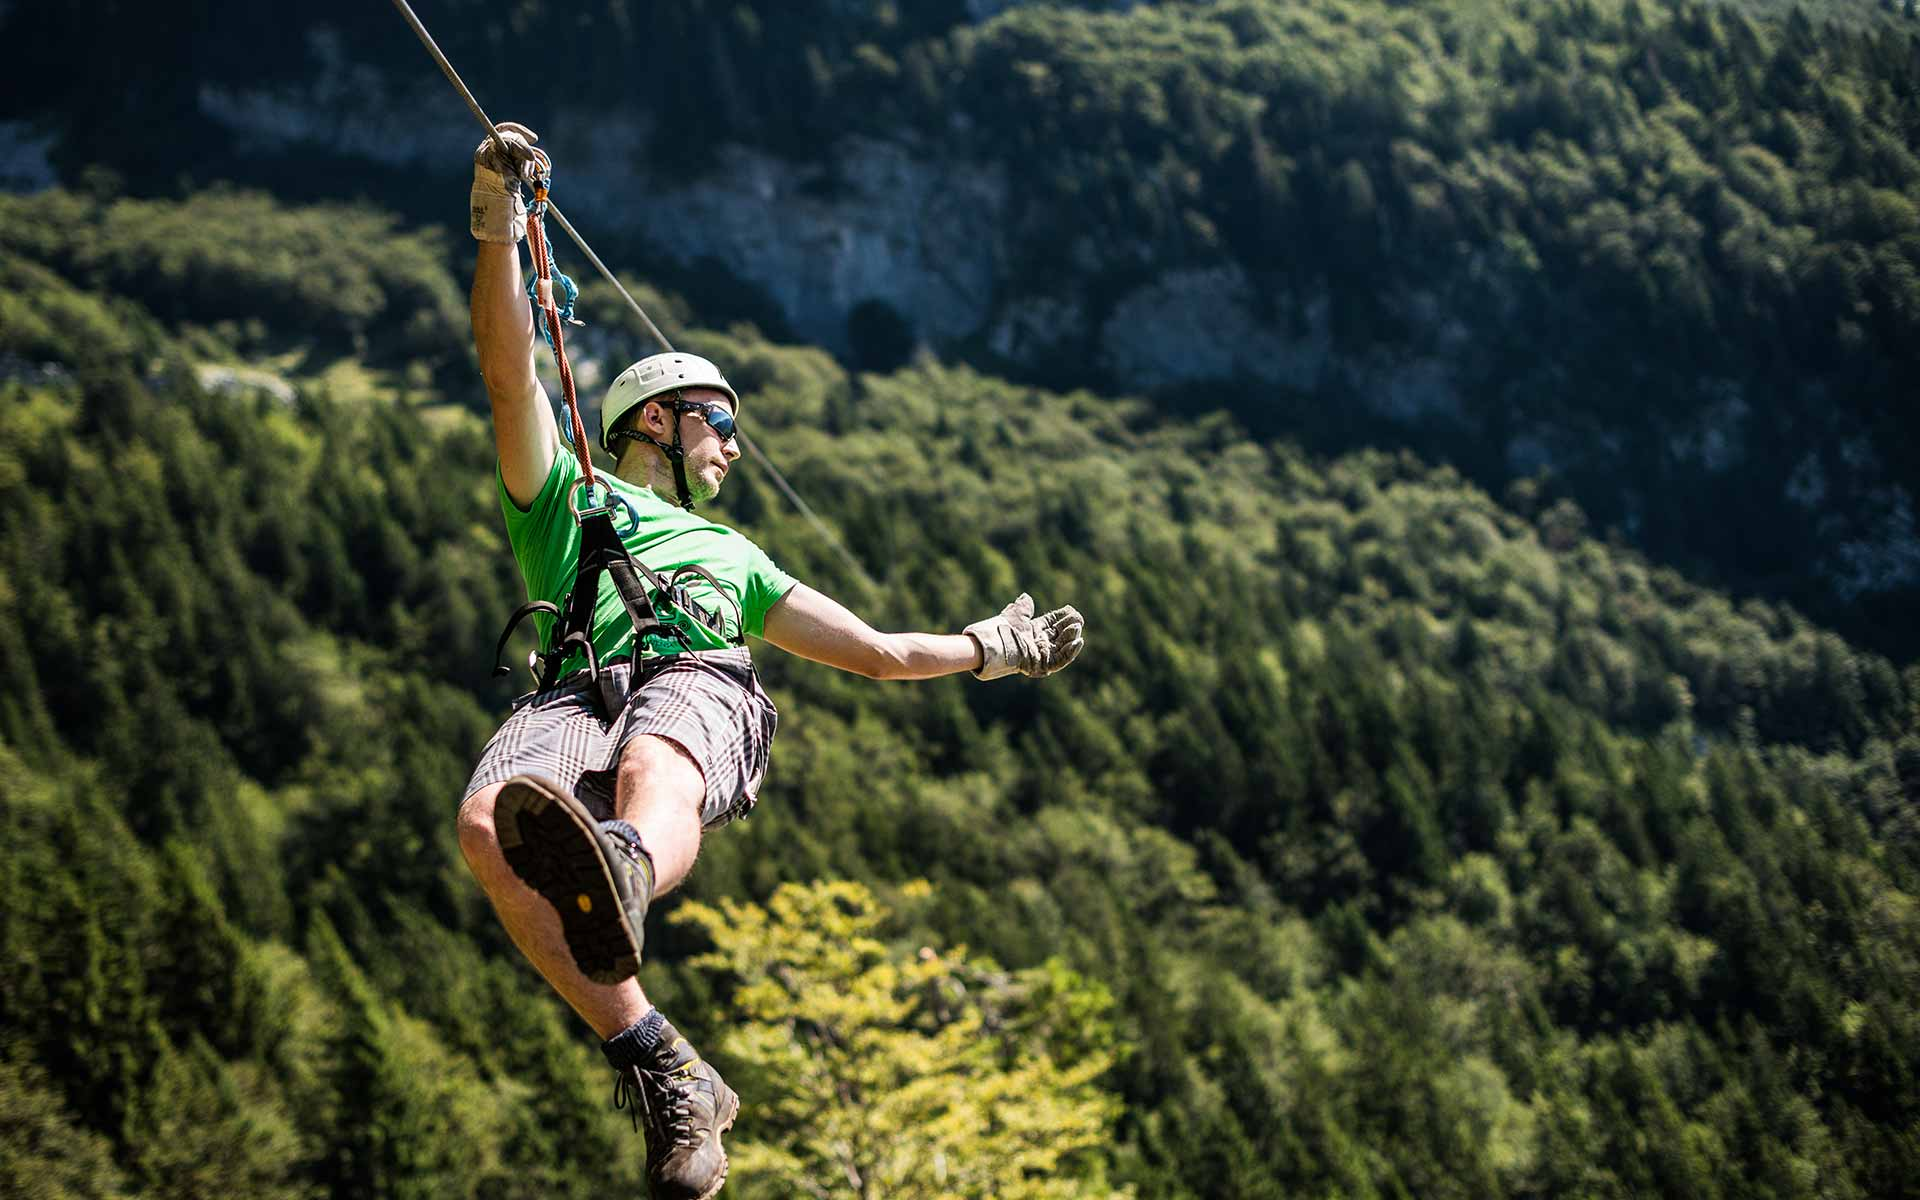 The biggest zipline in Slovenia